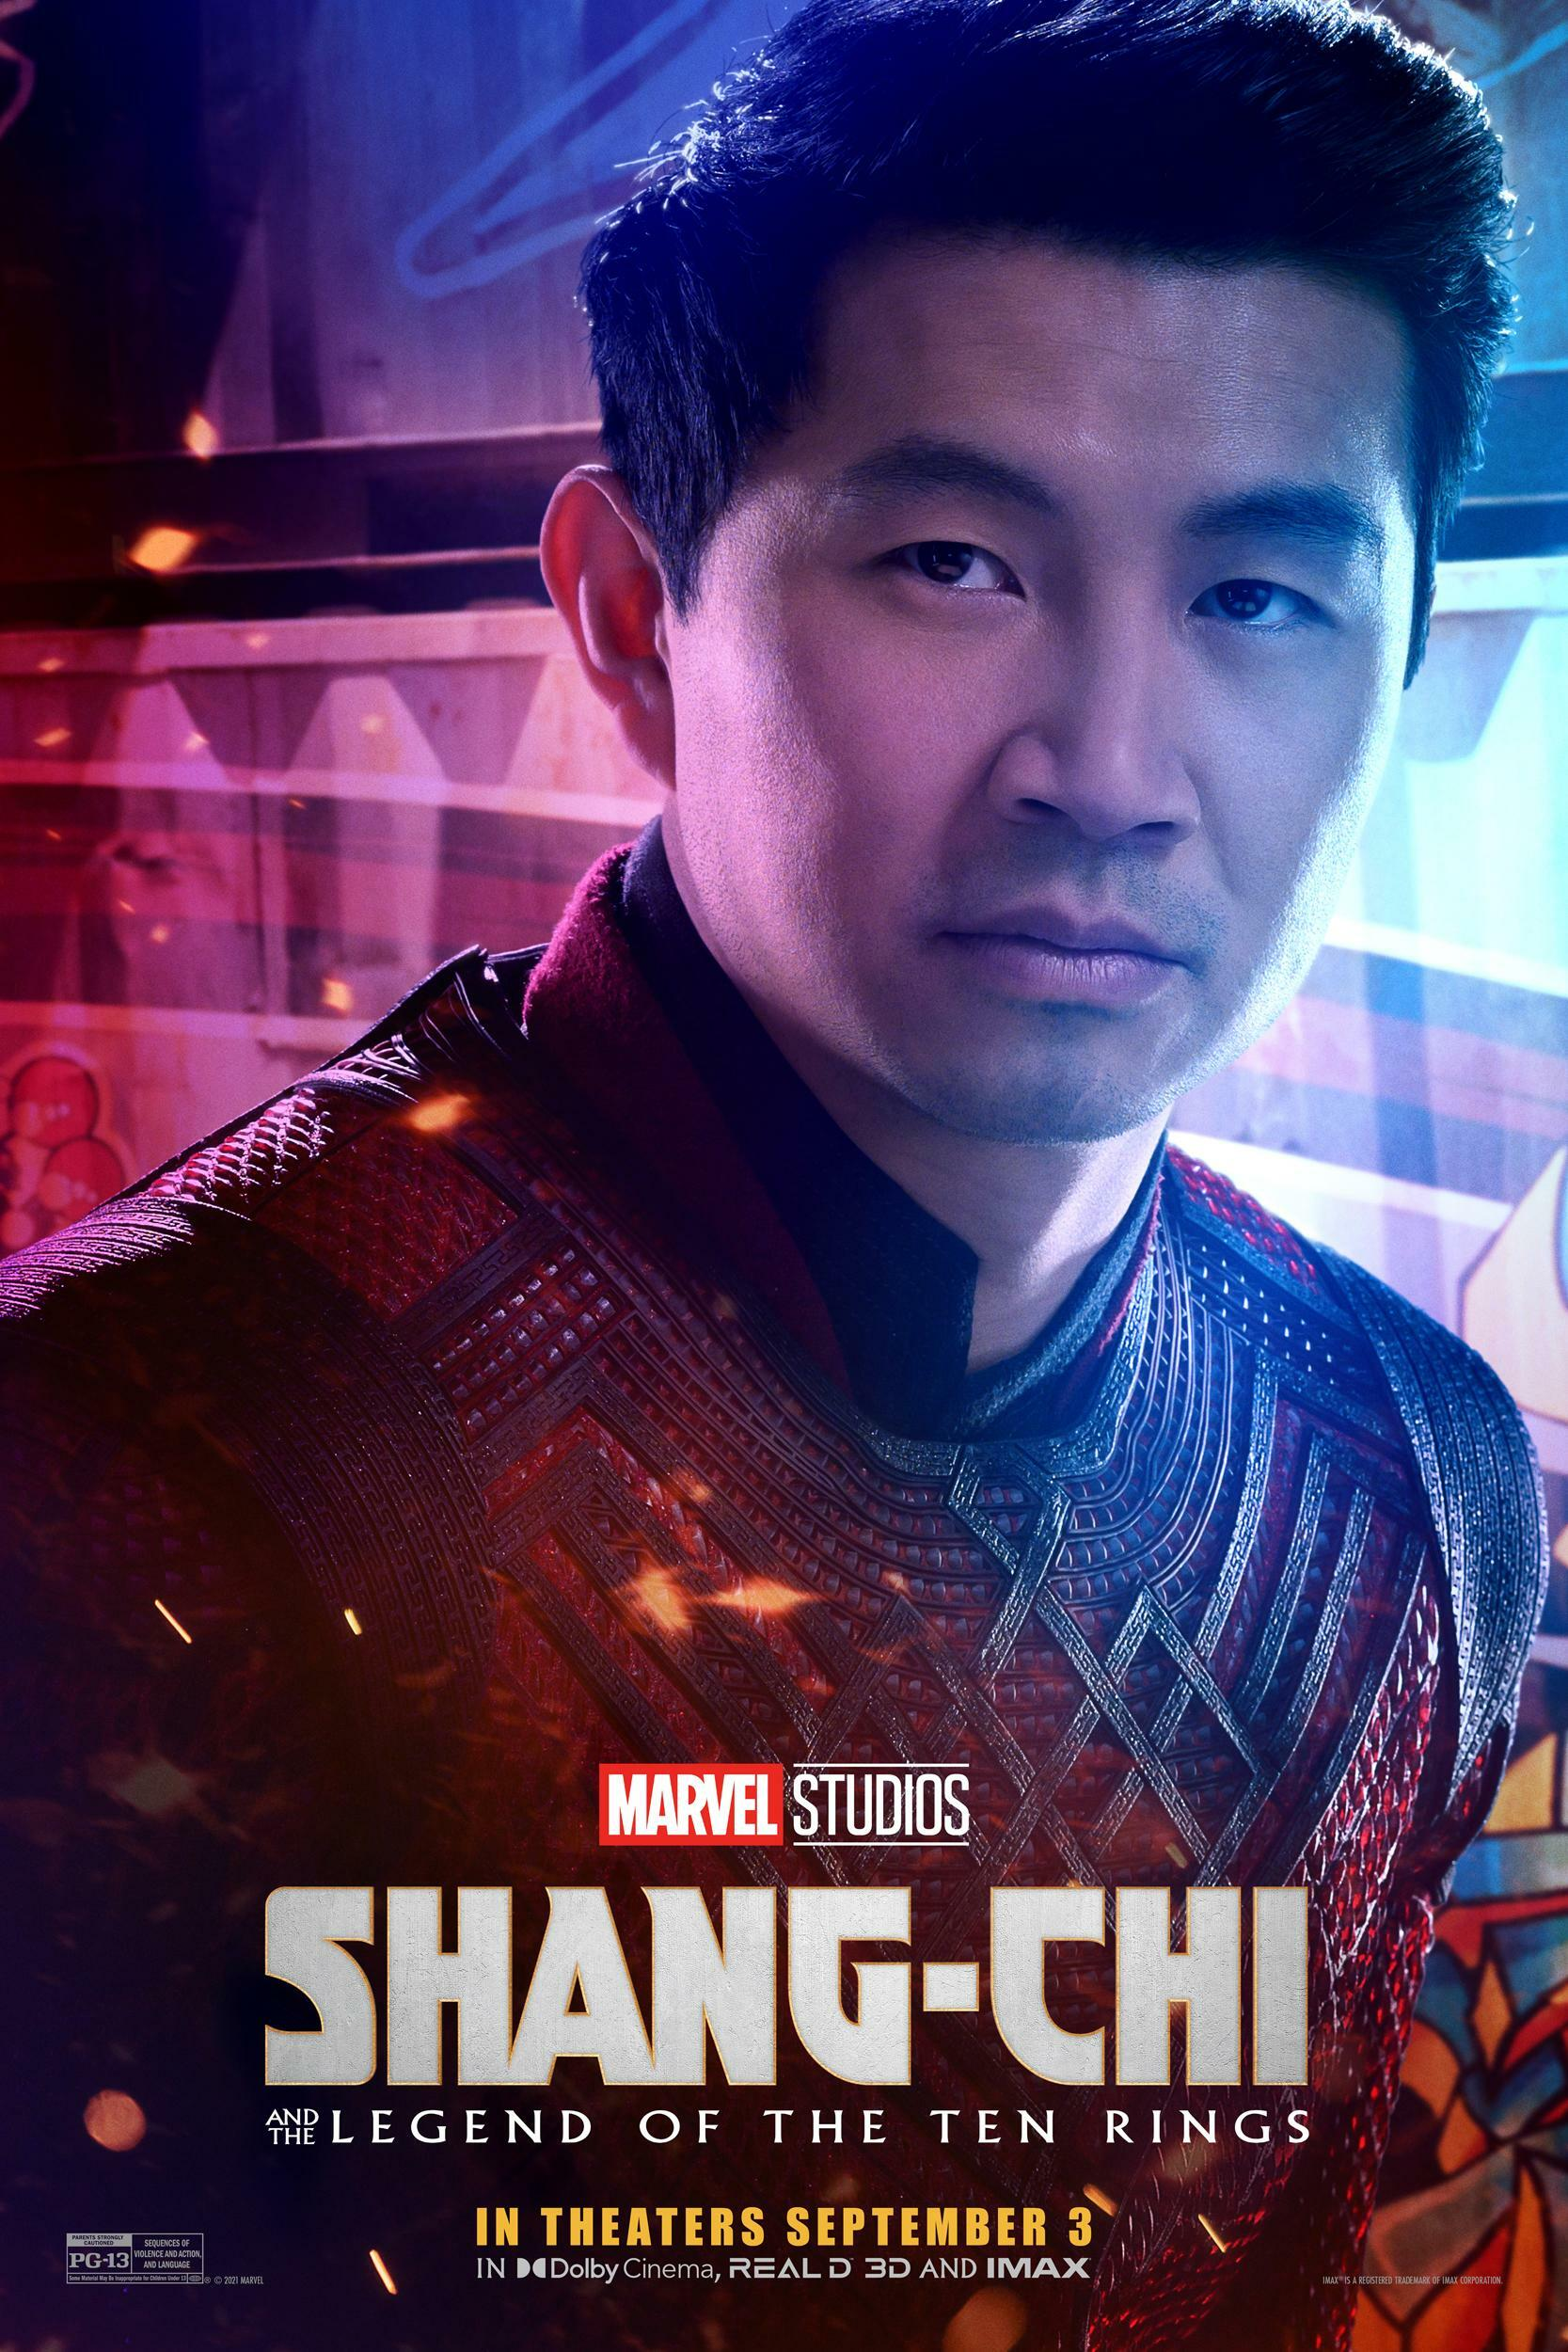 Shang Chi And The Legend Of The Ten Rings Charakterposter Zum Marvel Film